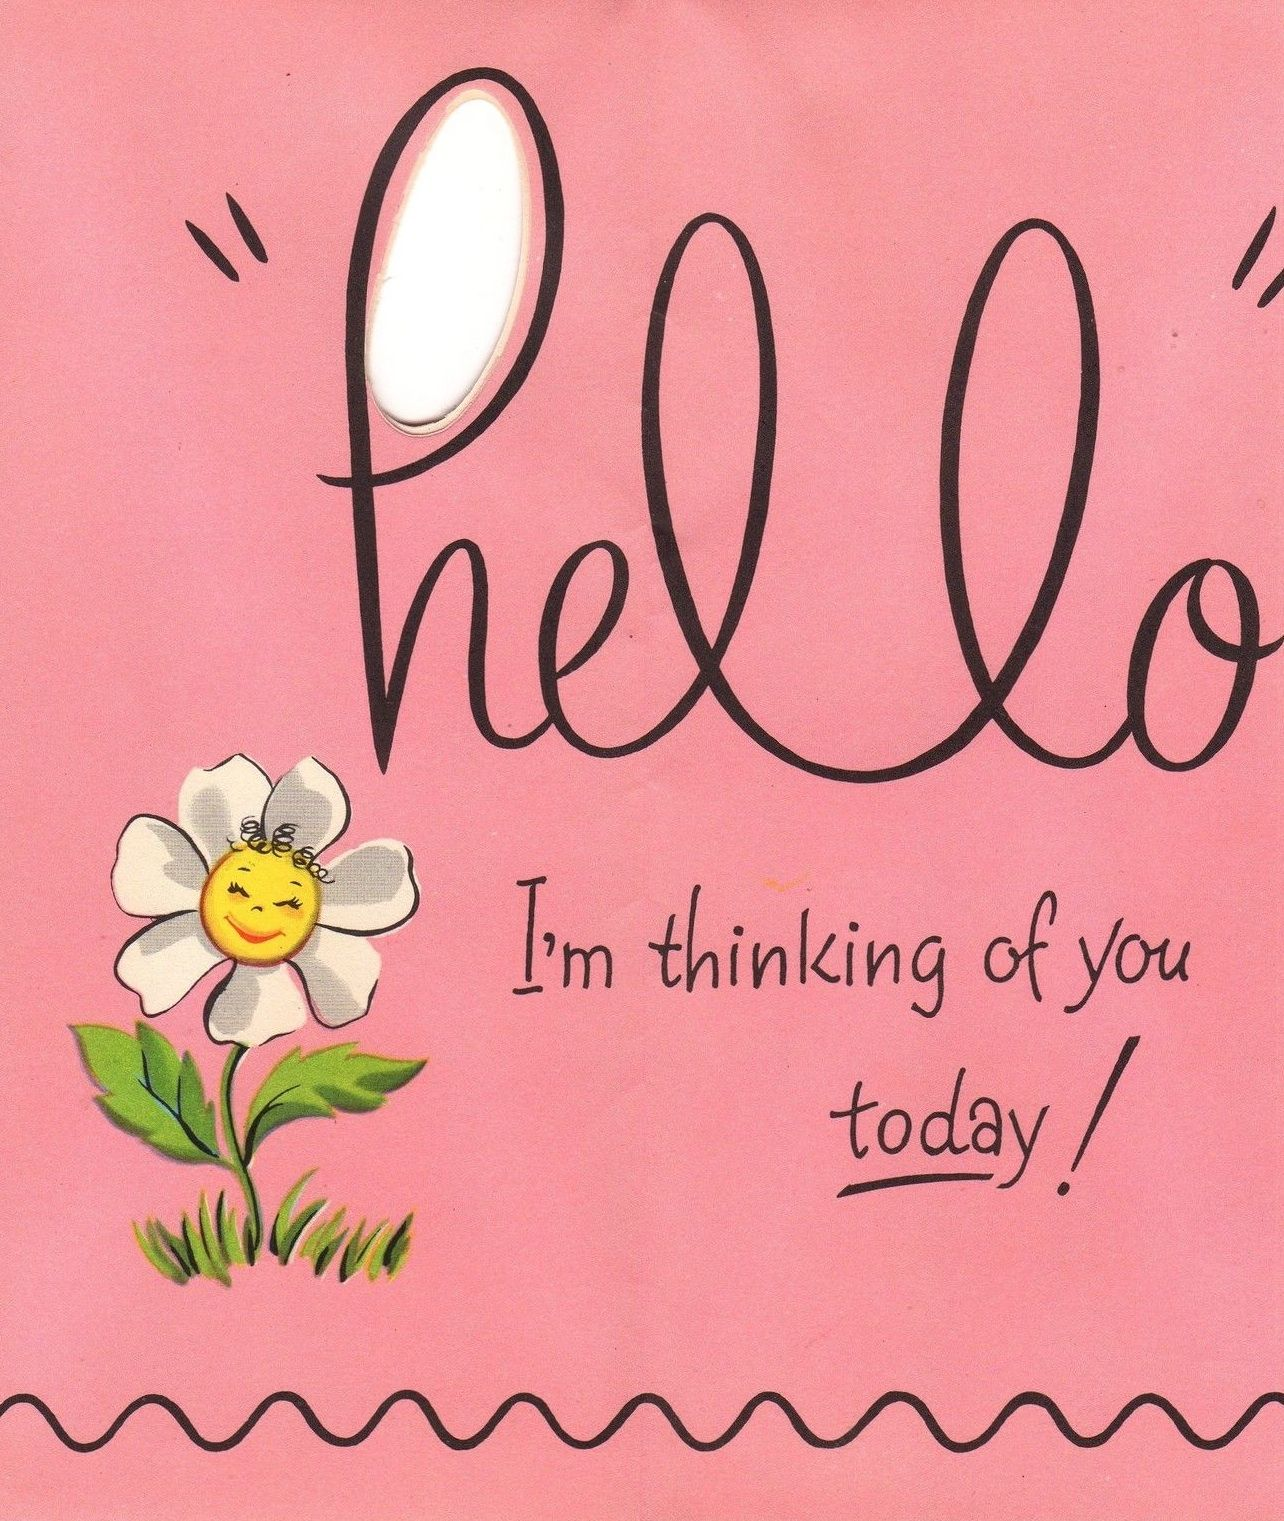 Pinterest Thinking Of You Quotes: Thinking Of You!! To All The Pinners Who Have A Birthday